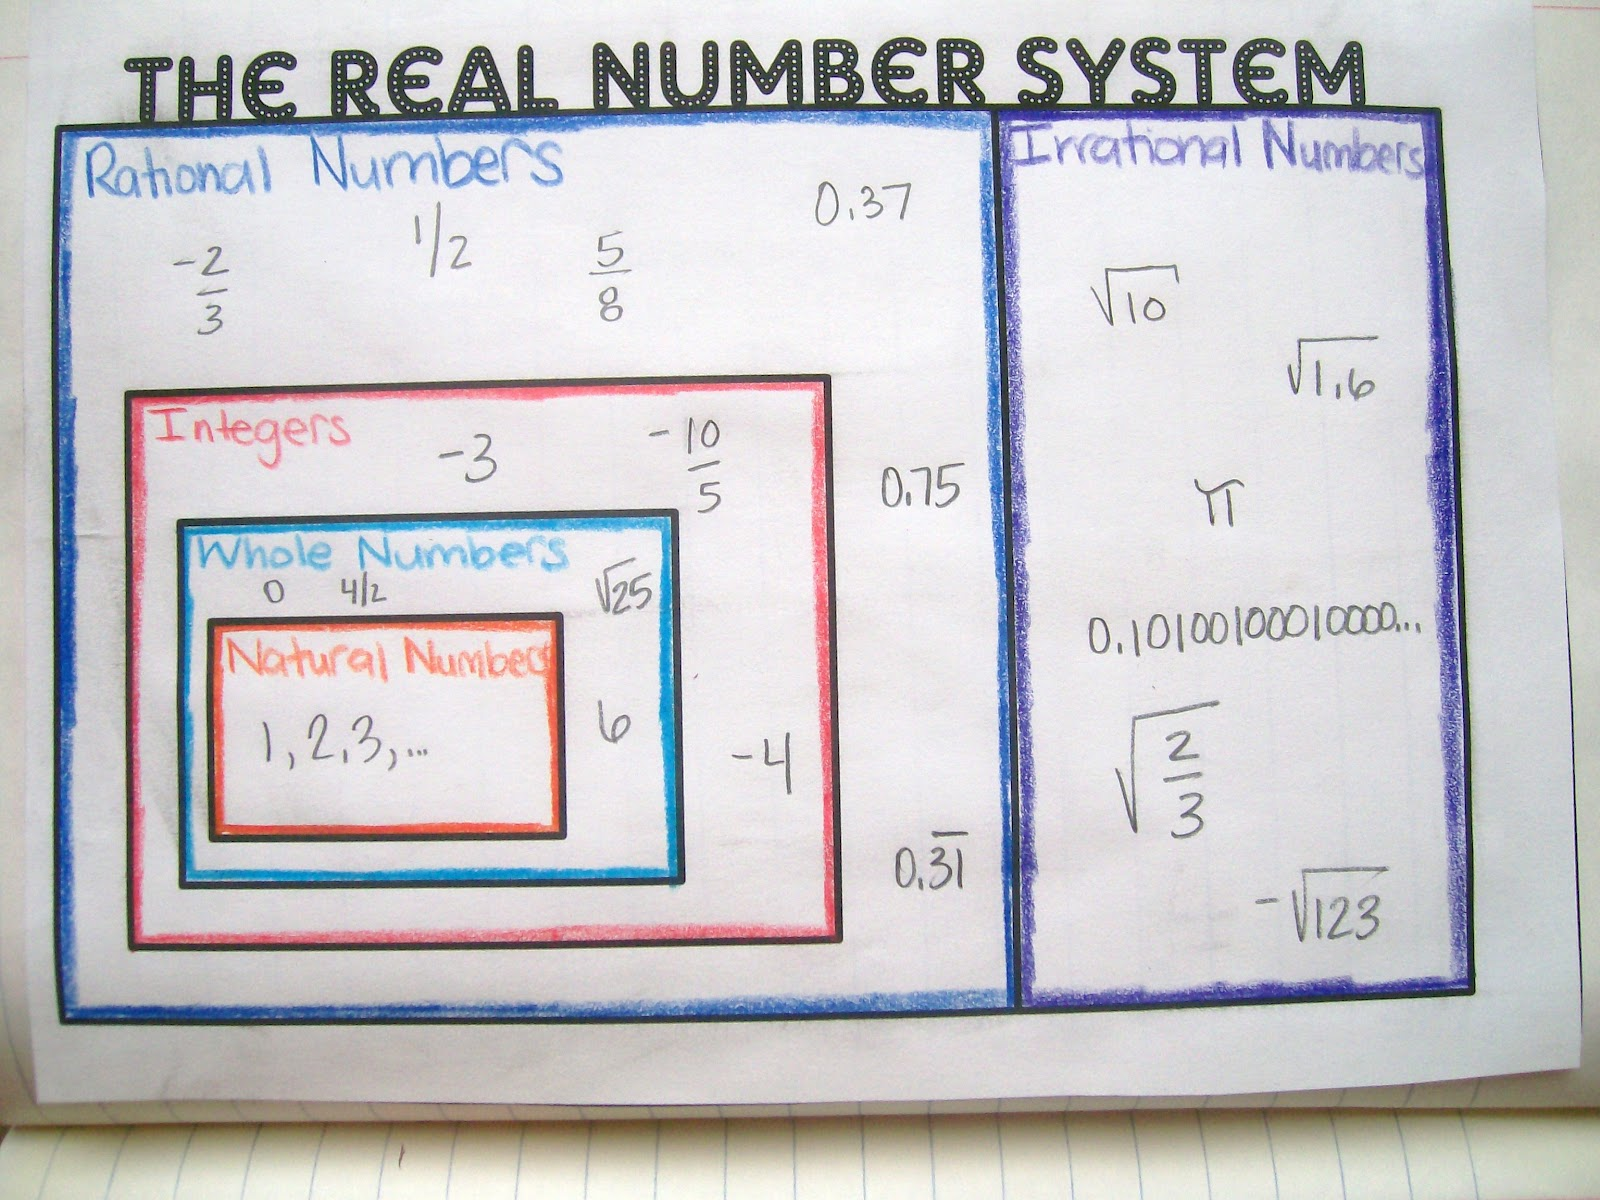 Venn Diagram Of Rational And Irrational Numbers 8 Bit Magnitude Comparator Logic Math Love Real Number System Graphic Organizer Interactive I Want The Students To Outline Boxes With Colored Pencils Emphasize Fact That Everything Inside Red Box